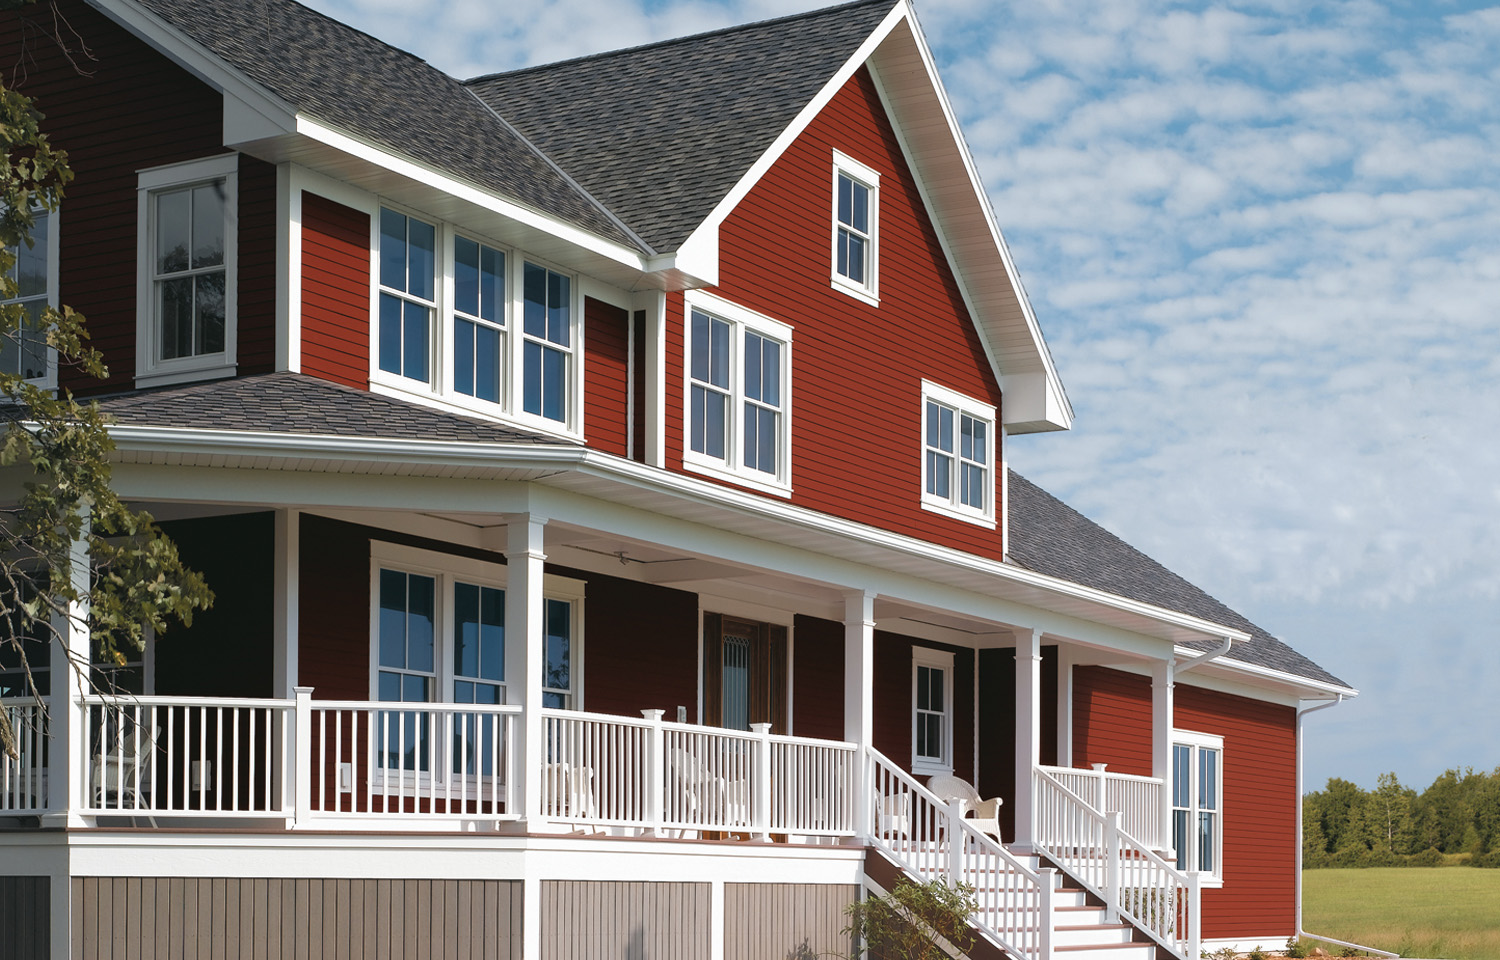 28 Of The Most Popular House Siding Colors Allura Usa